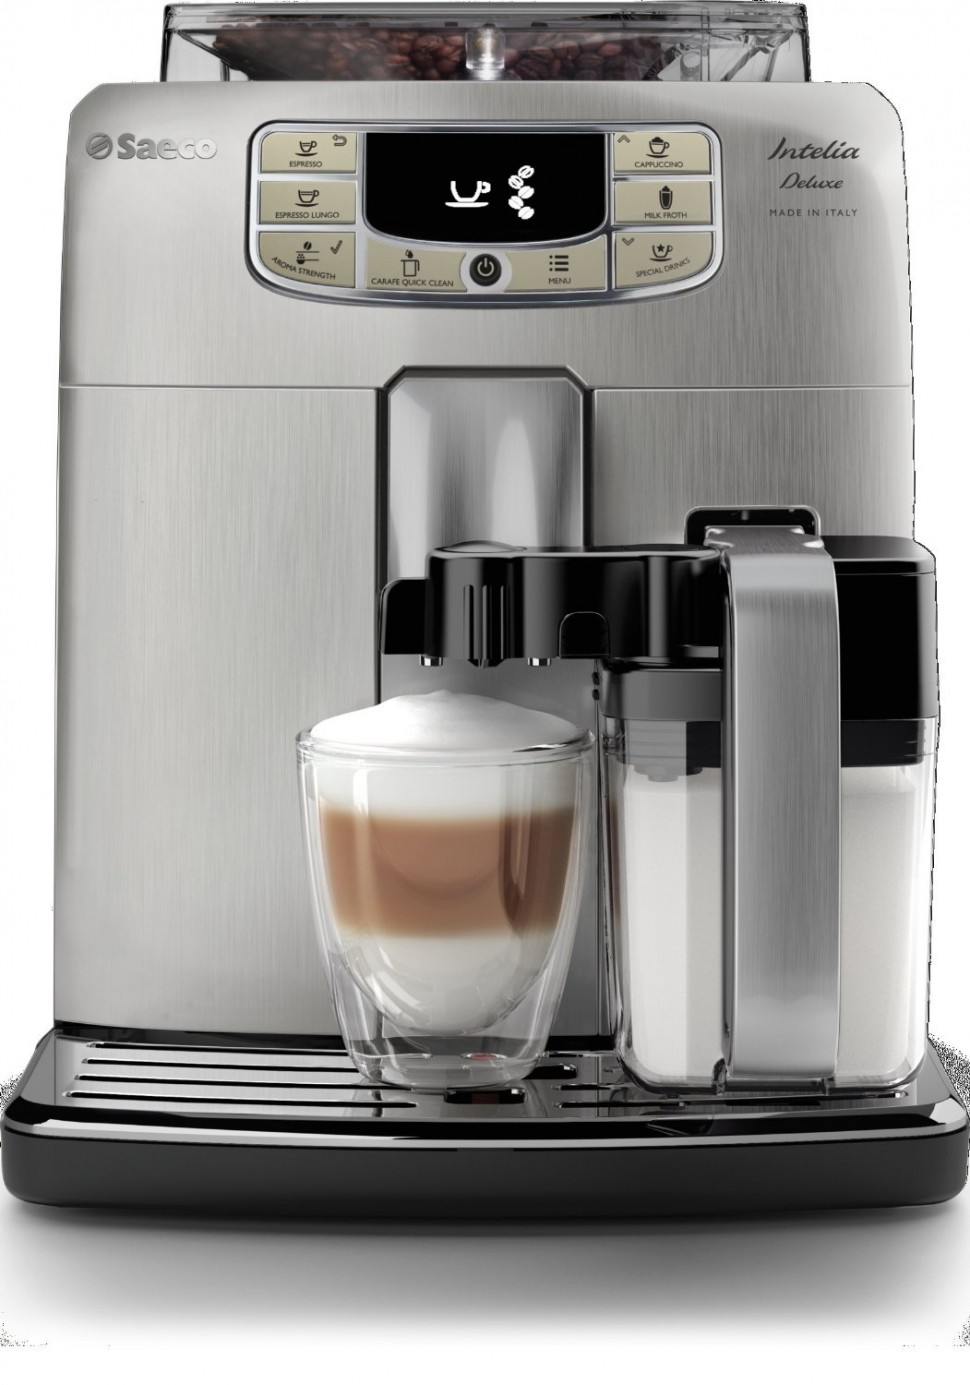 philips saeco hd8906 01 intelia deluxe super automatic espresso machine genuine ebay. Black Bedroom Furniture Sets. Home Design Ideas